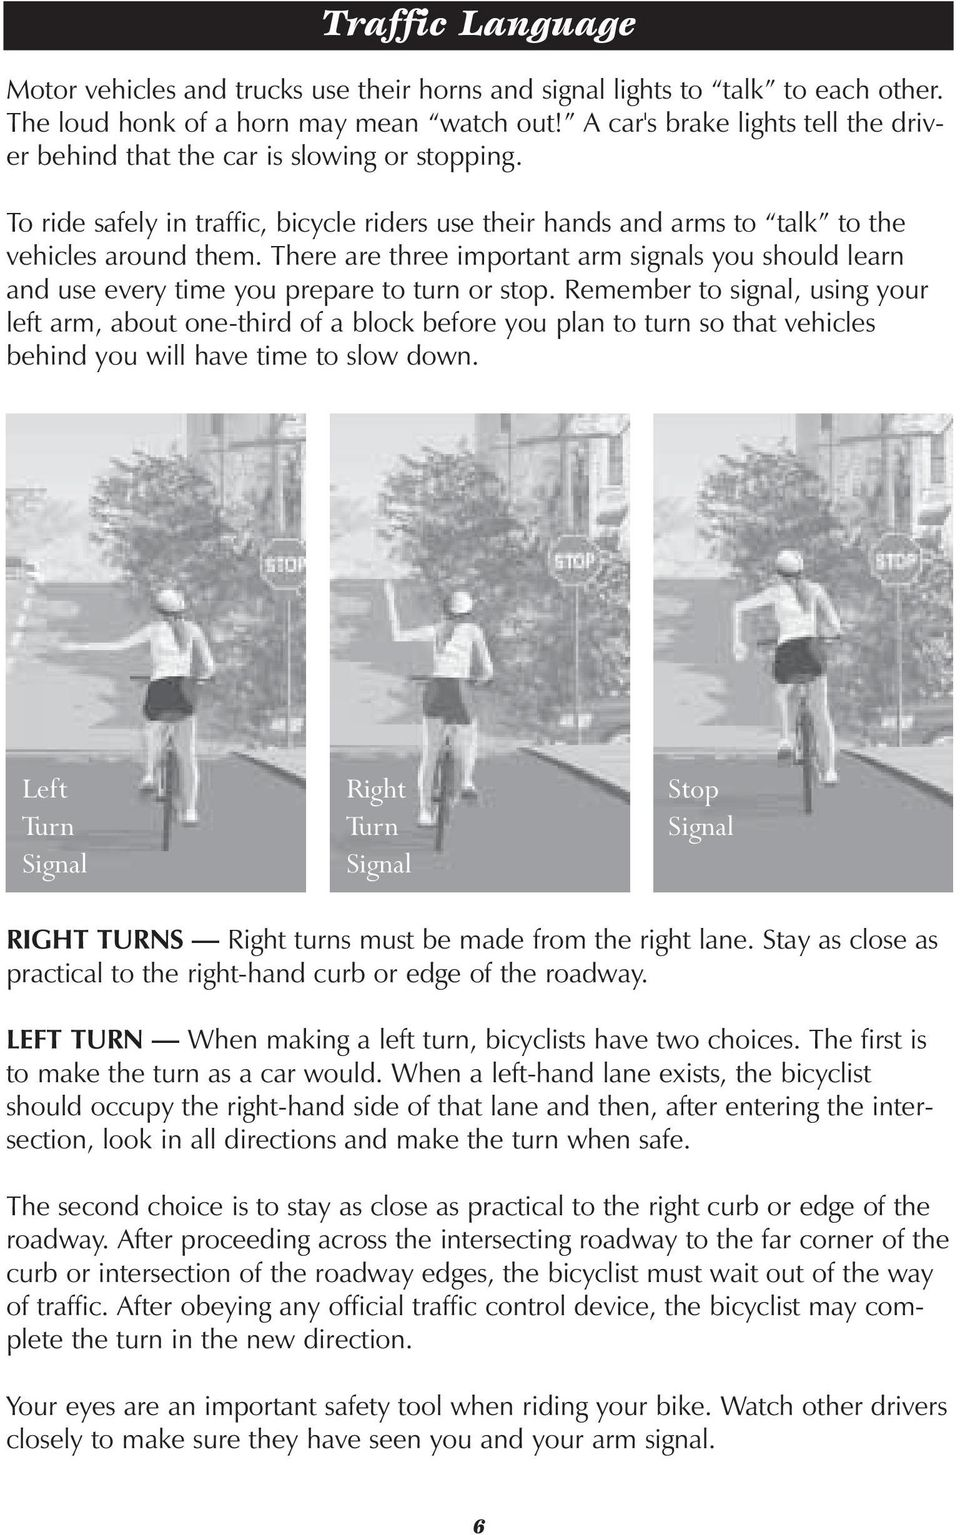 There are three important arm signals you should learn and use every time you prepare to turn or stop.